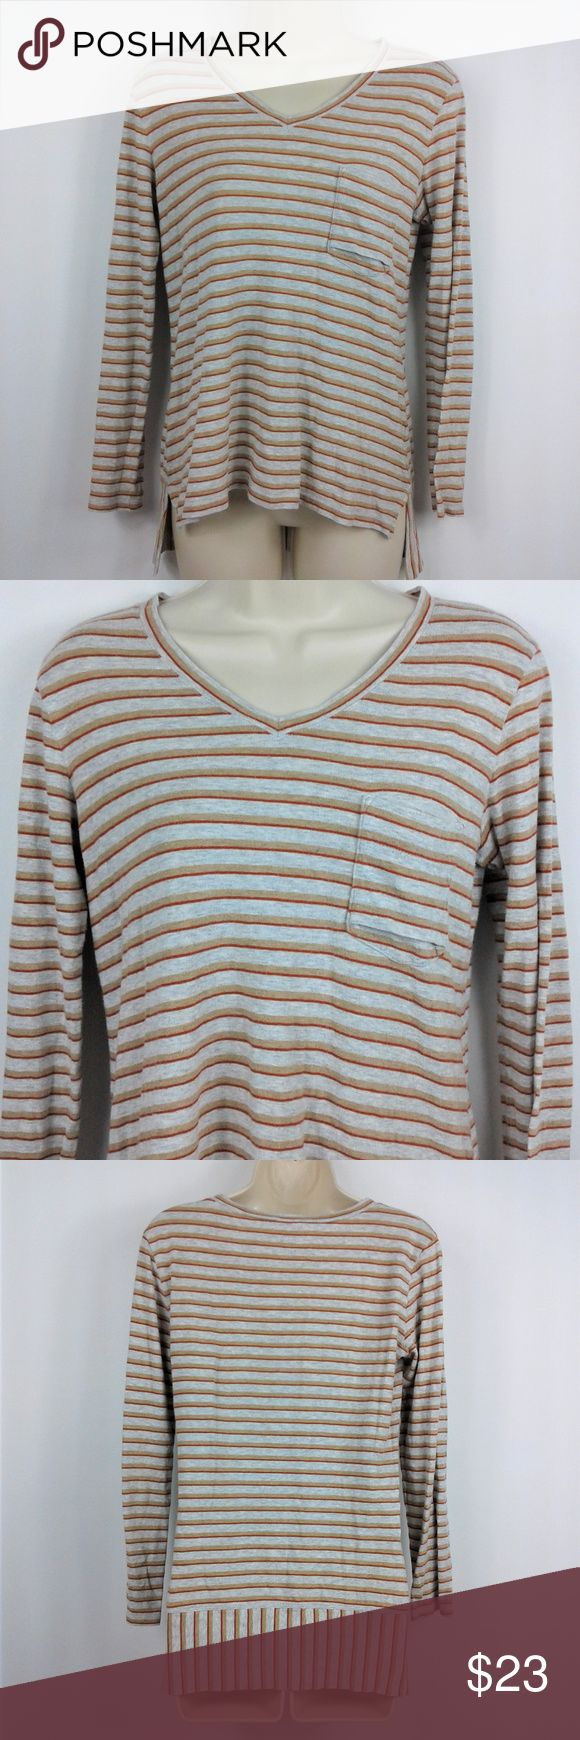 "CAbi Skipper Tee Long Sleeve High Low CAbi Skipper Tee Long Sleeve High Low Striped # 3055 Sz Small 100% Cotton Pocket  Skipper Tee #3055 long-sleeved V-neck. High low hem. Horizontal stripes of grey, camel, and orange. Complimentary vertical stripes in back. Front pocket  Size: Small  Measurements  Chest (pit to pit): 17""  Height (back of collar to hem): Front: 21"" Back: 25""  Sleeve: 21"" CAbi Tops Tees - Long Sleeve"